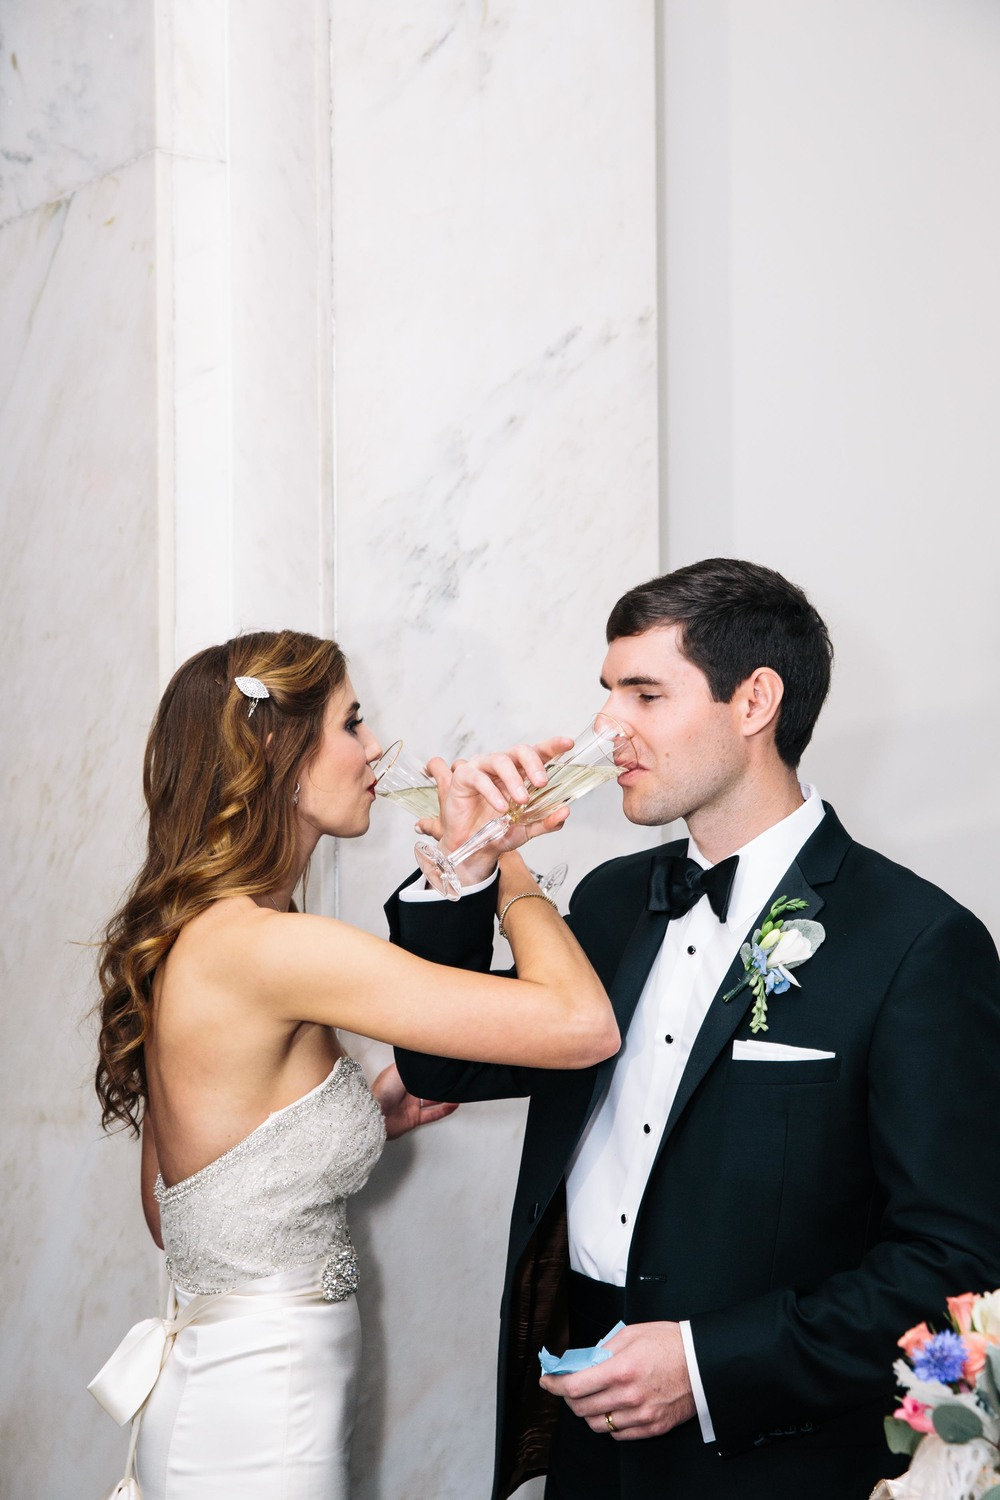 jimmy-rowalt-atlanta-wedding-photography-112.jpg